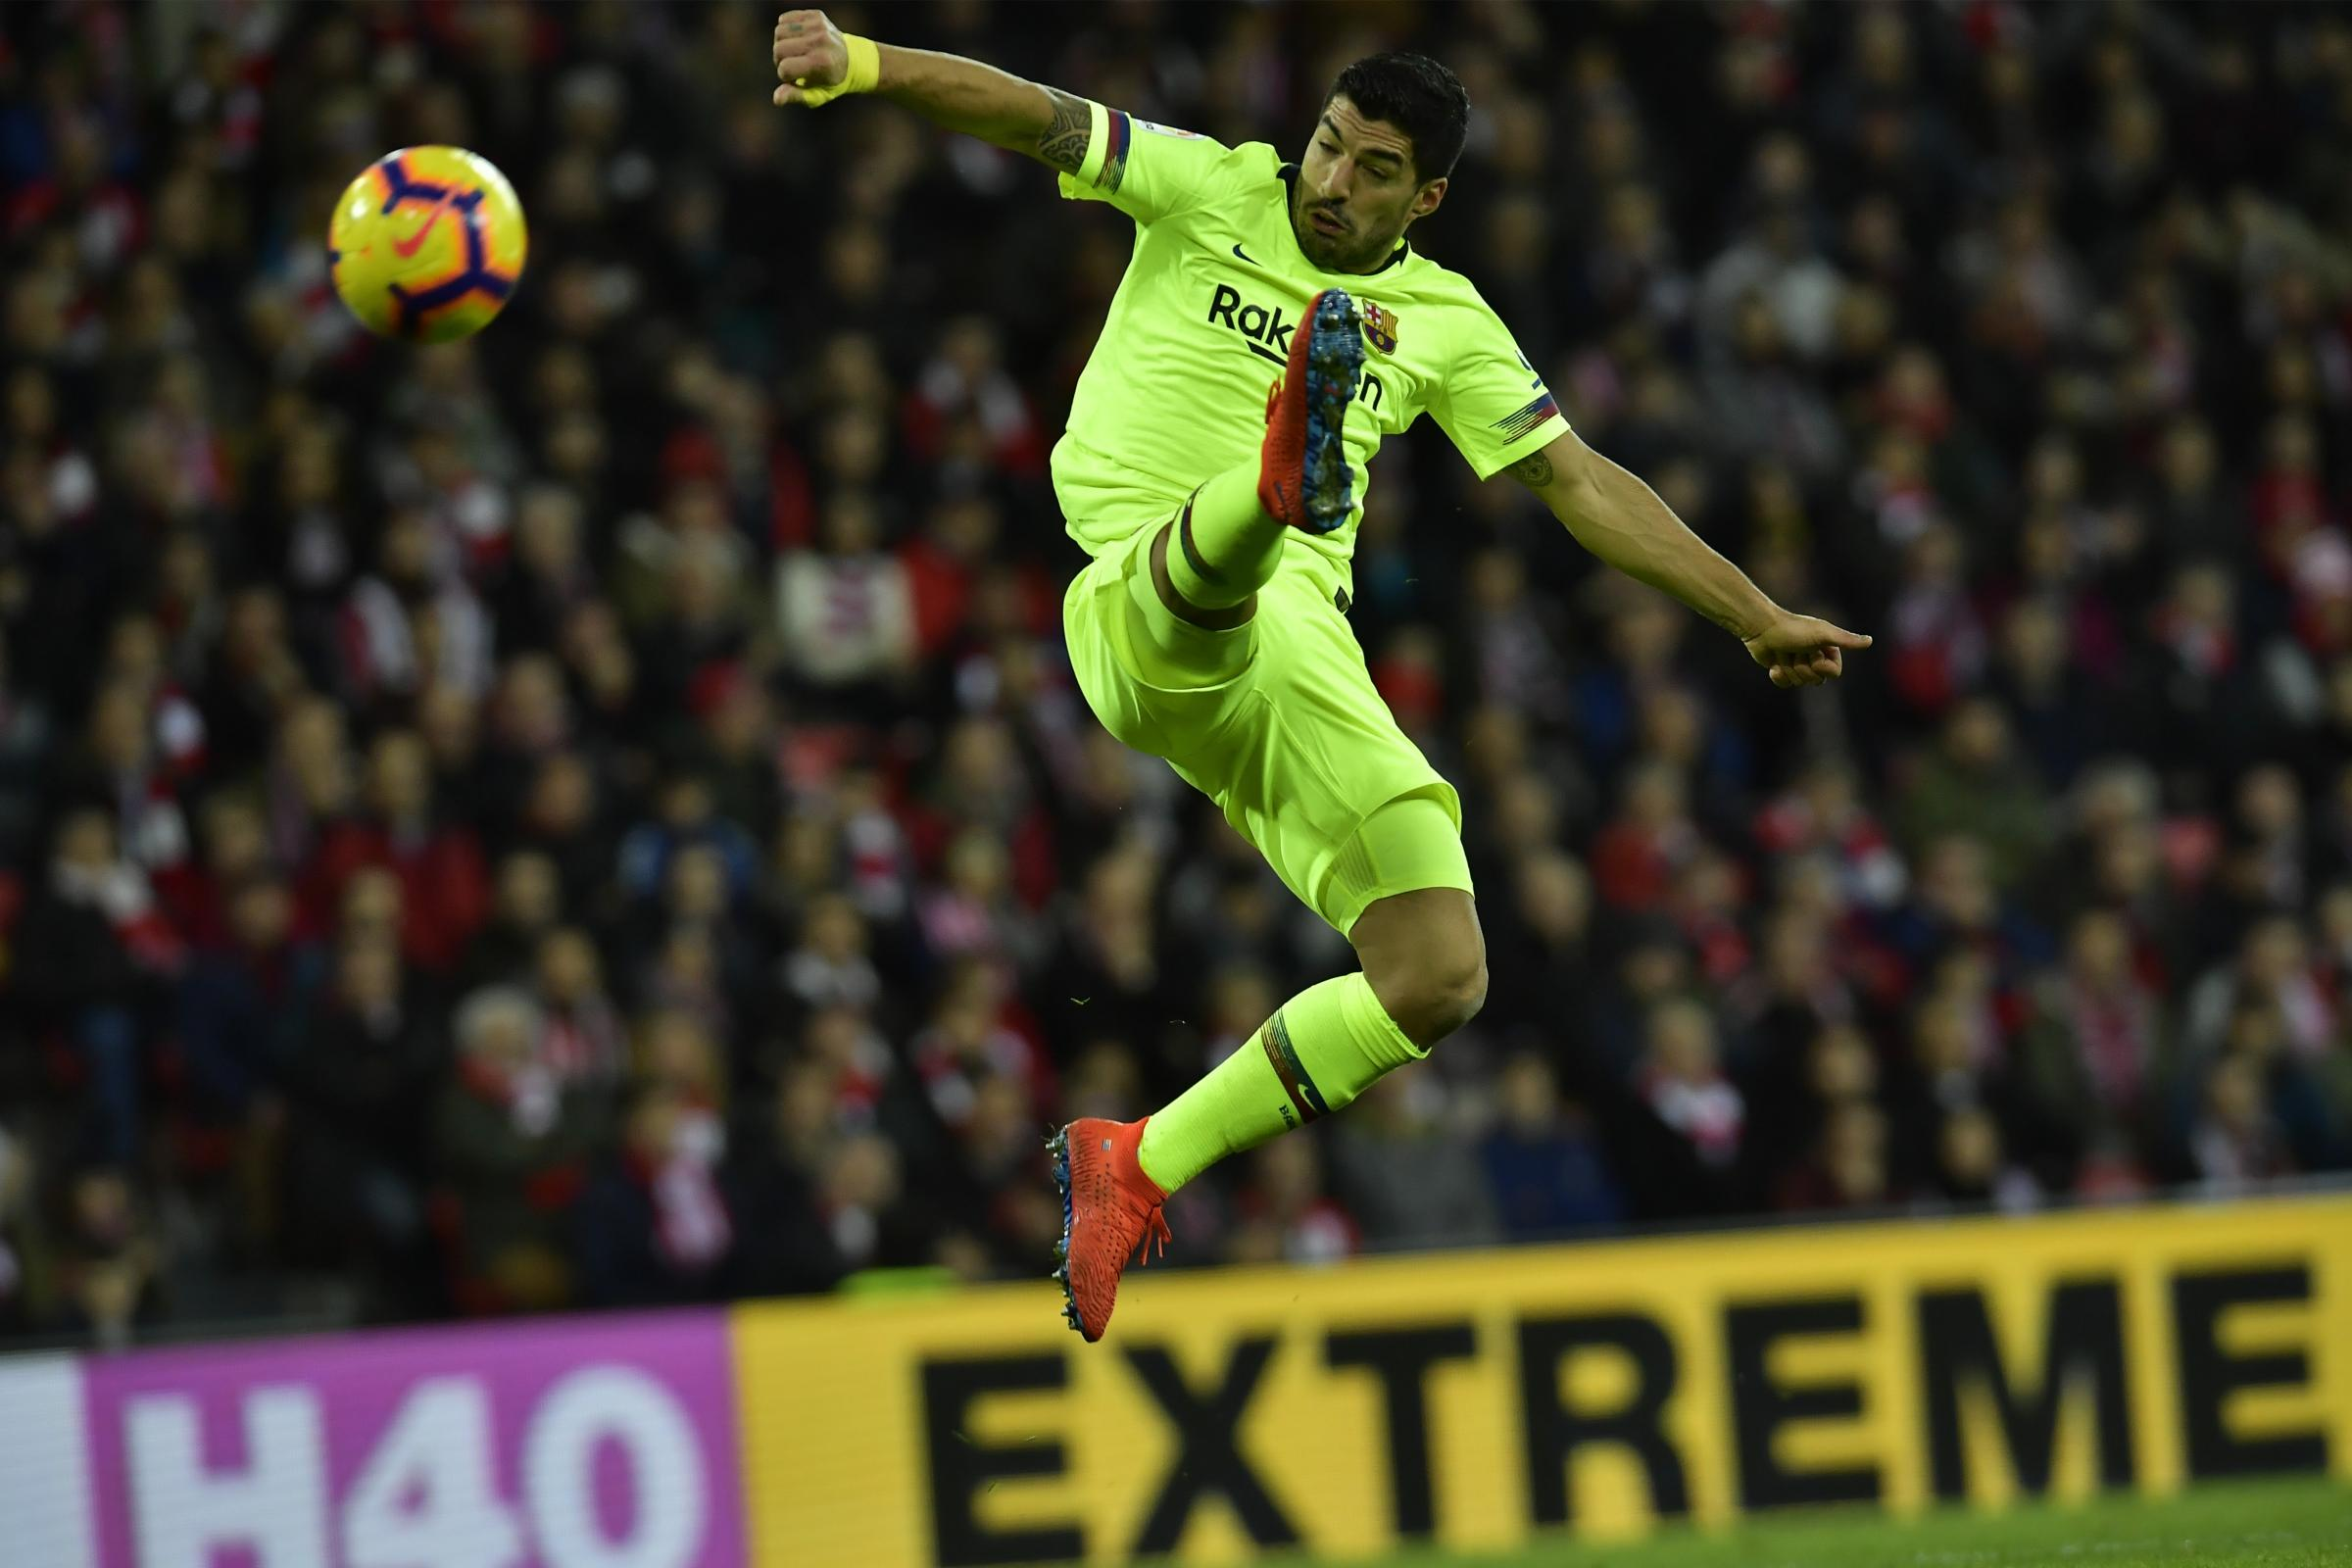 Barcelona's Luis Suarez has hailed keeepr Marc-Andre ter Stegen's performance at Athletic Bilbao